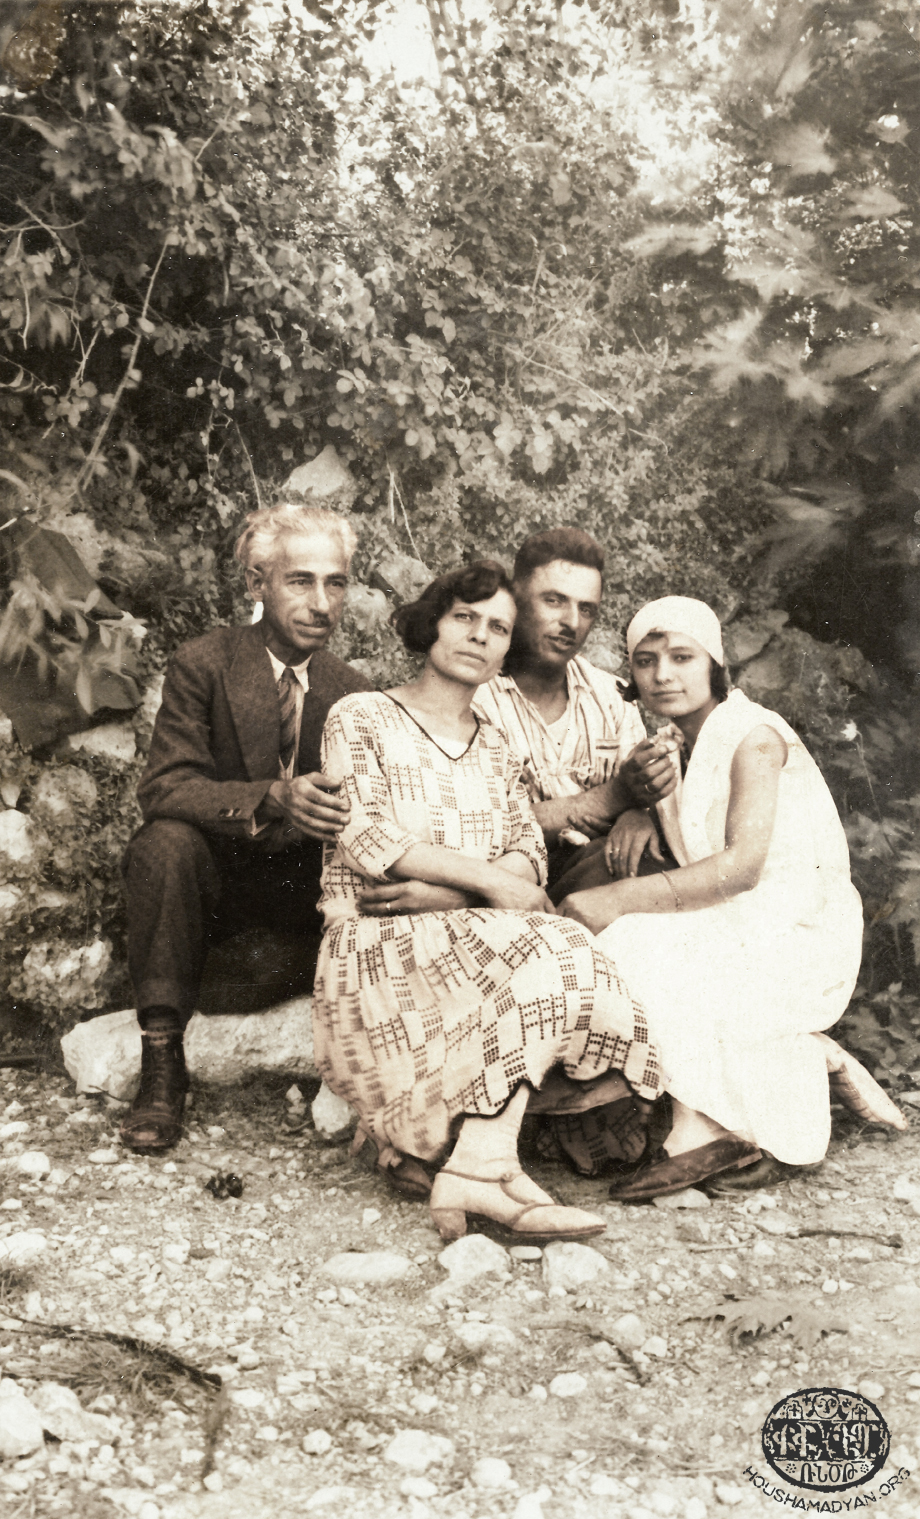 Sis couples, probably photographed in Lebanon